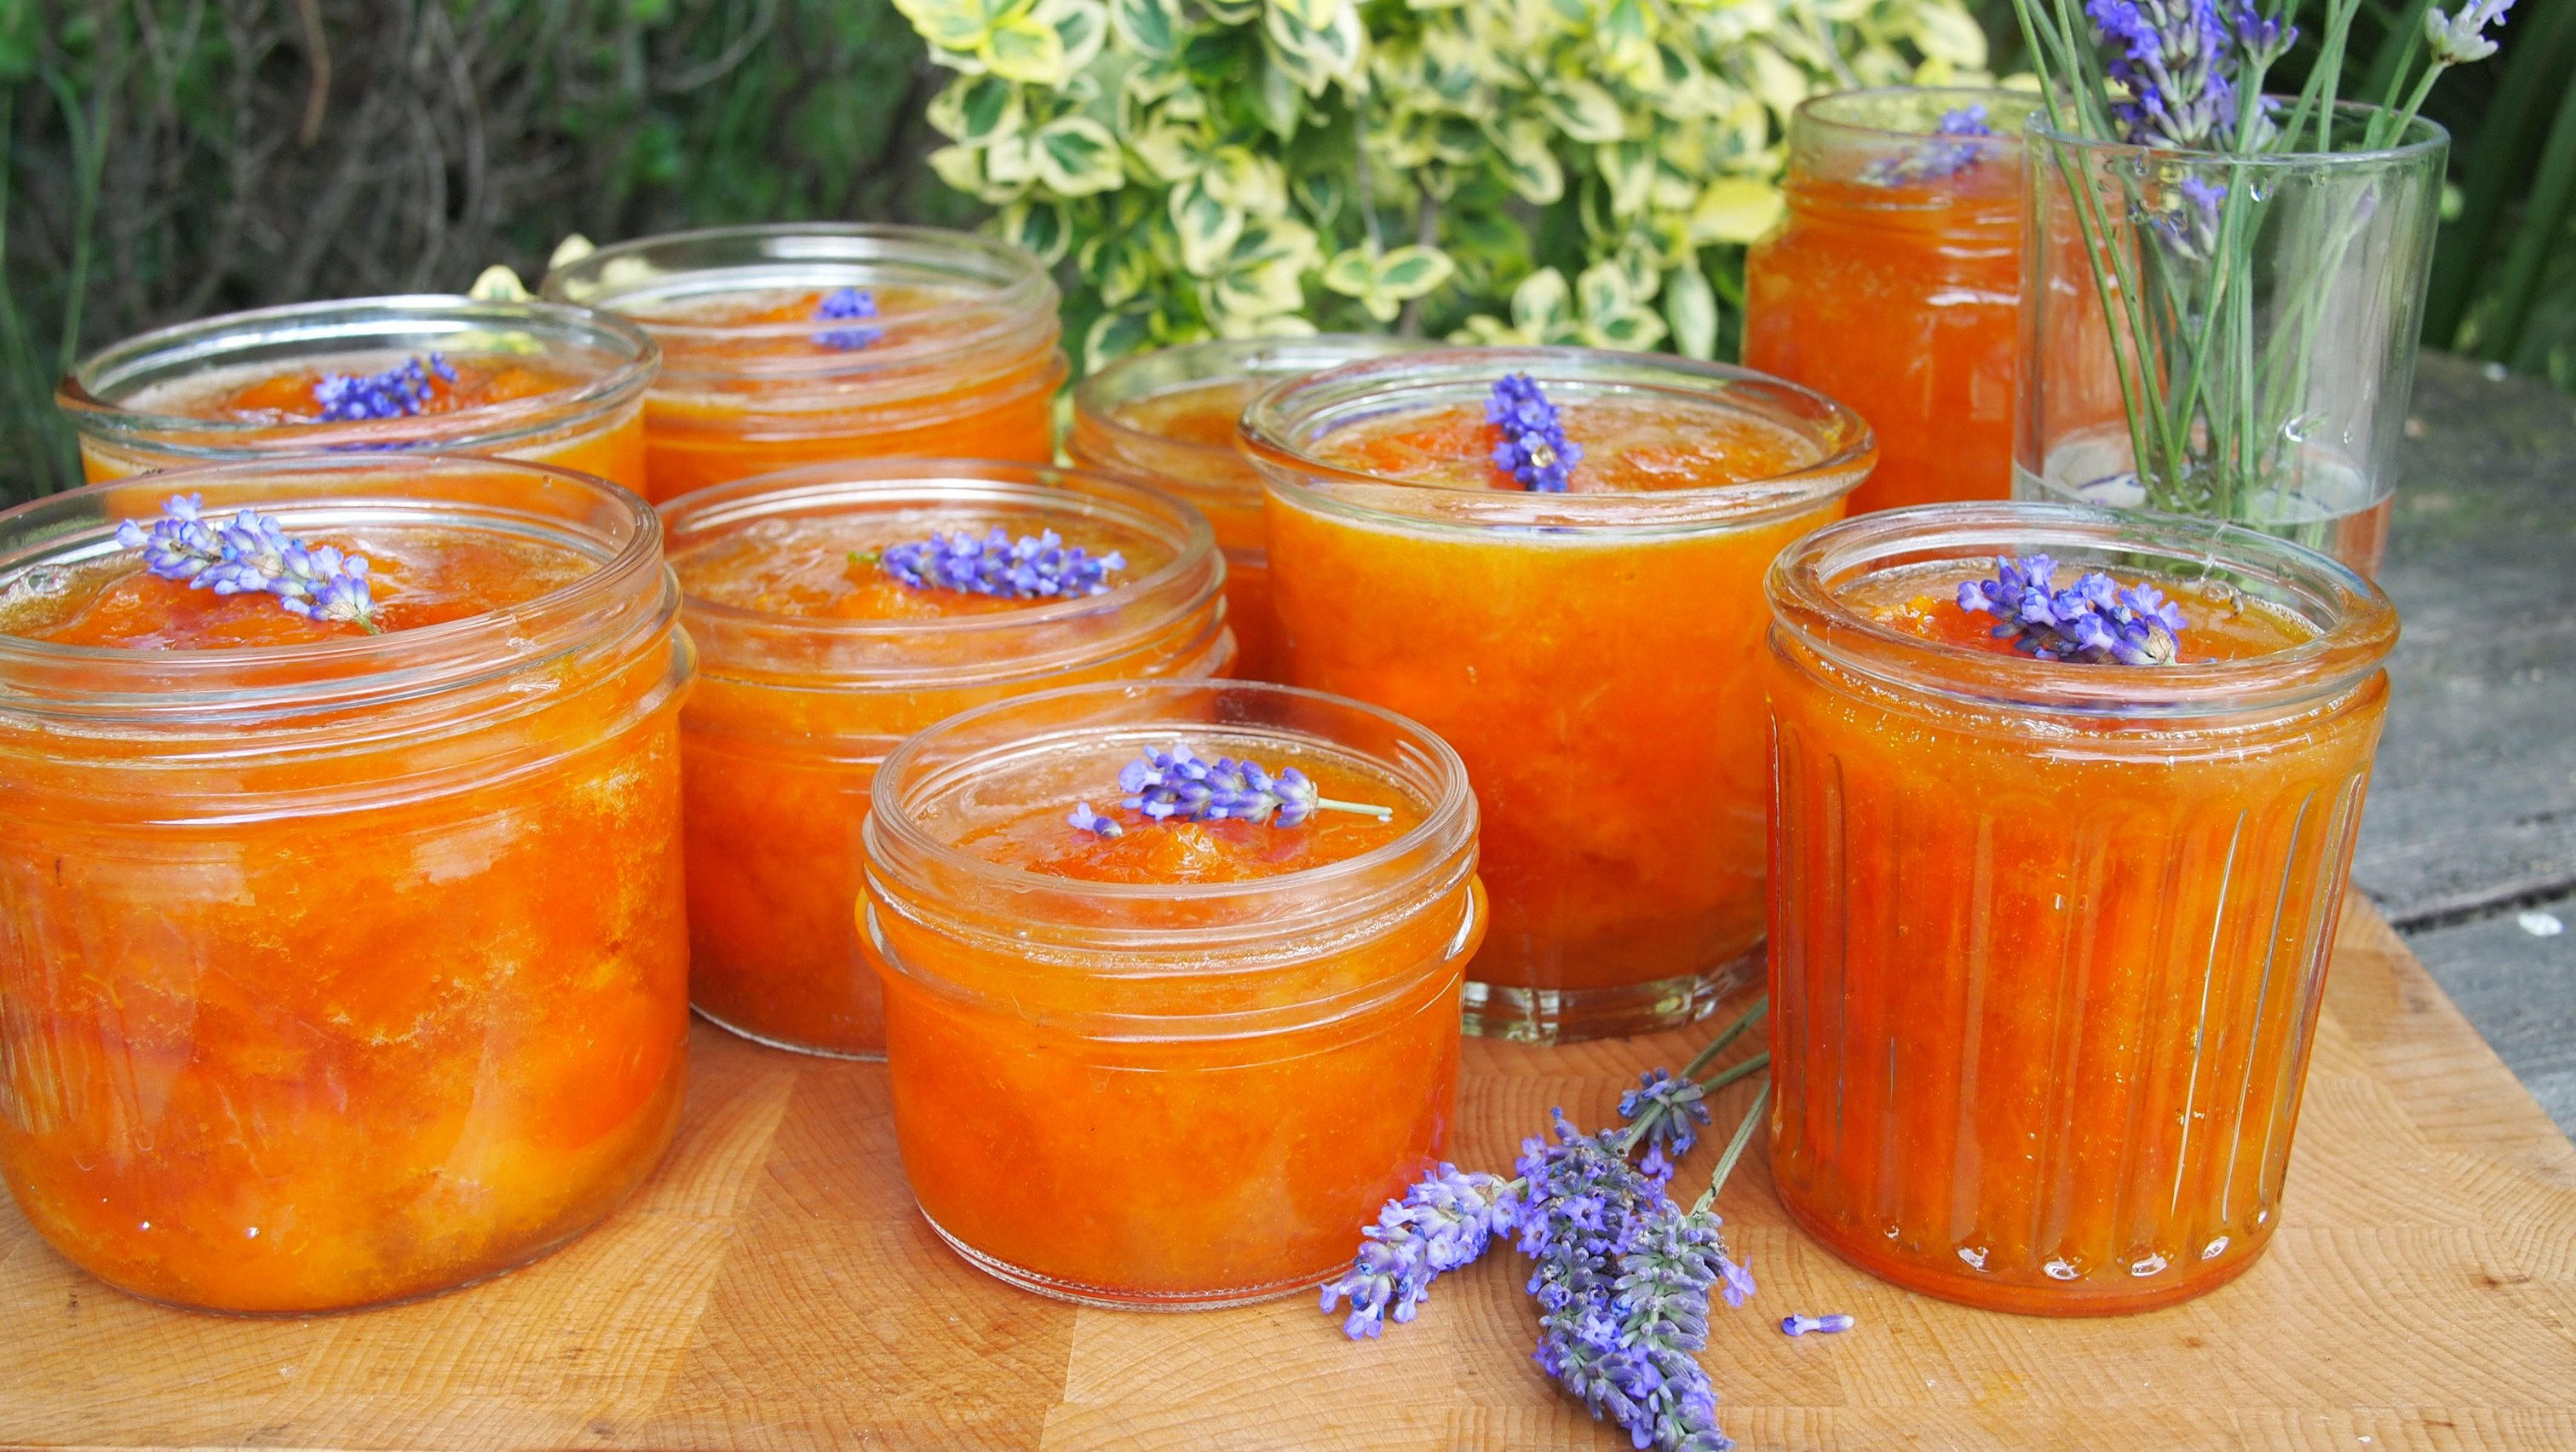 ... apricot and lavender jam apricot and lavender jam apricot and lavender